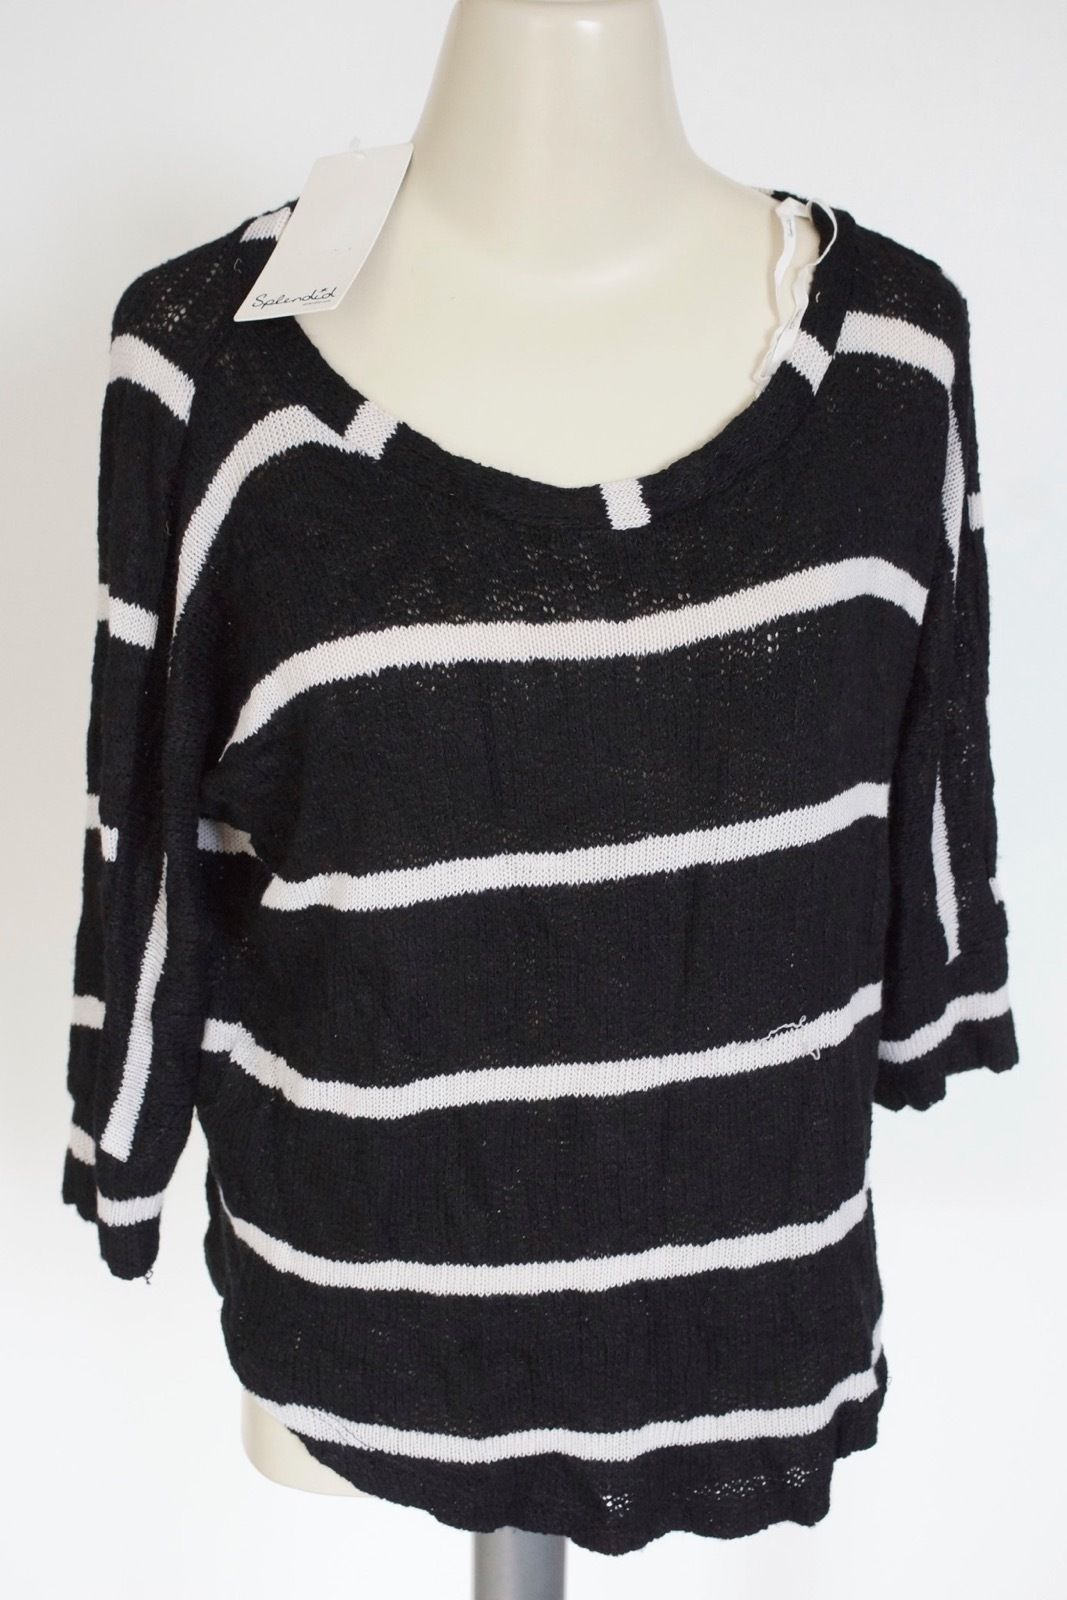 SPLENDID | Women's Boat Neck Striped Dolman Top sz S $85 black -pulls STAI87497N